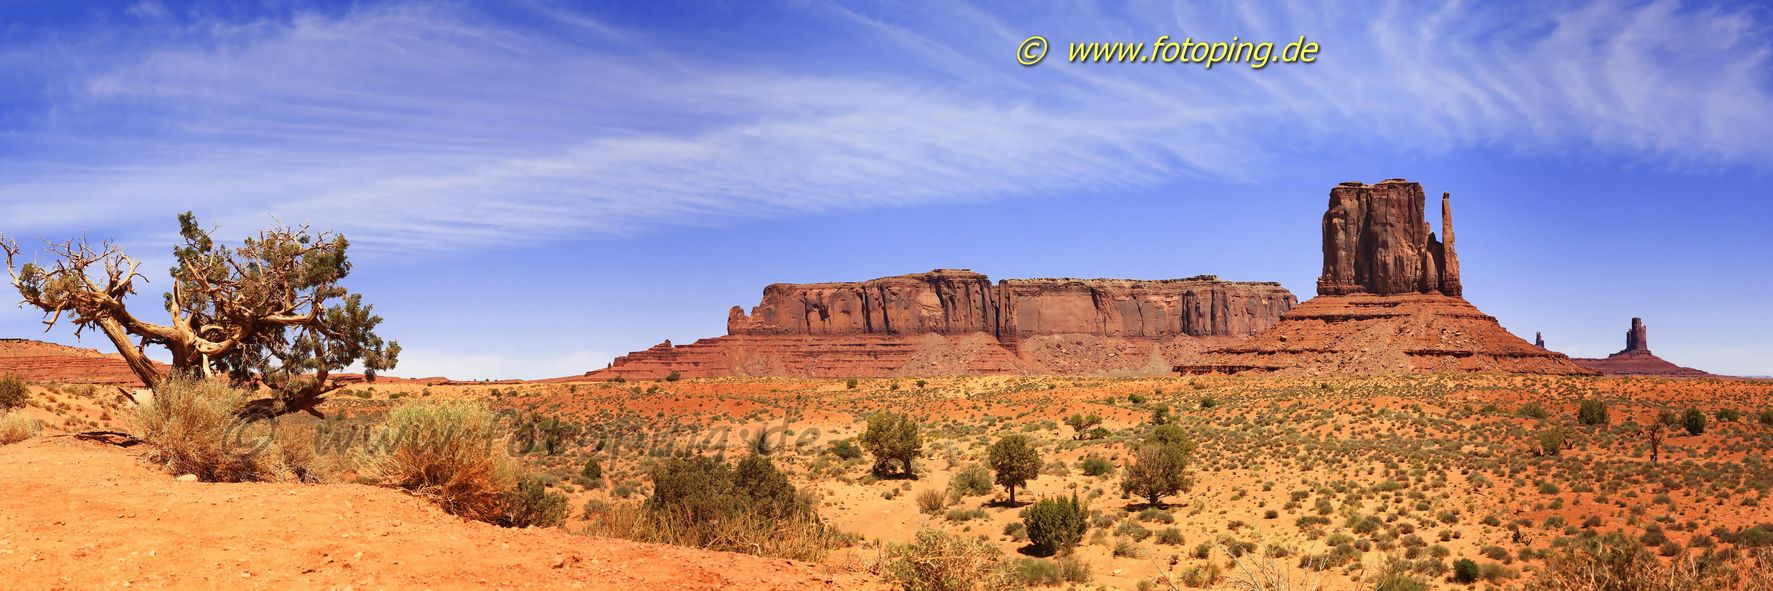 Monument Valley Landschaft